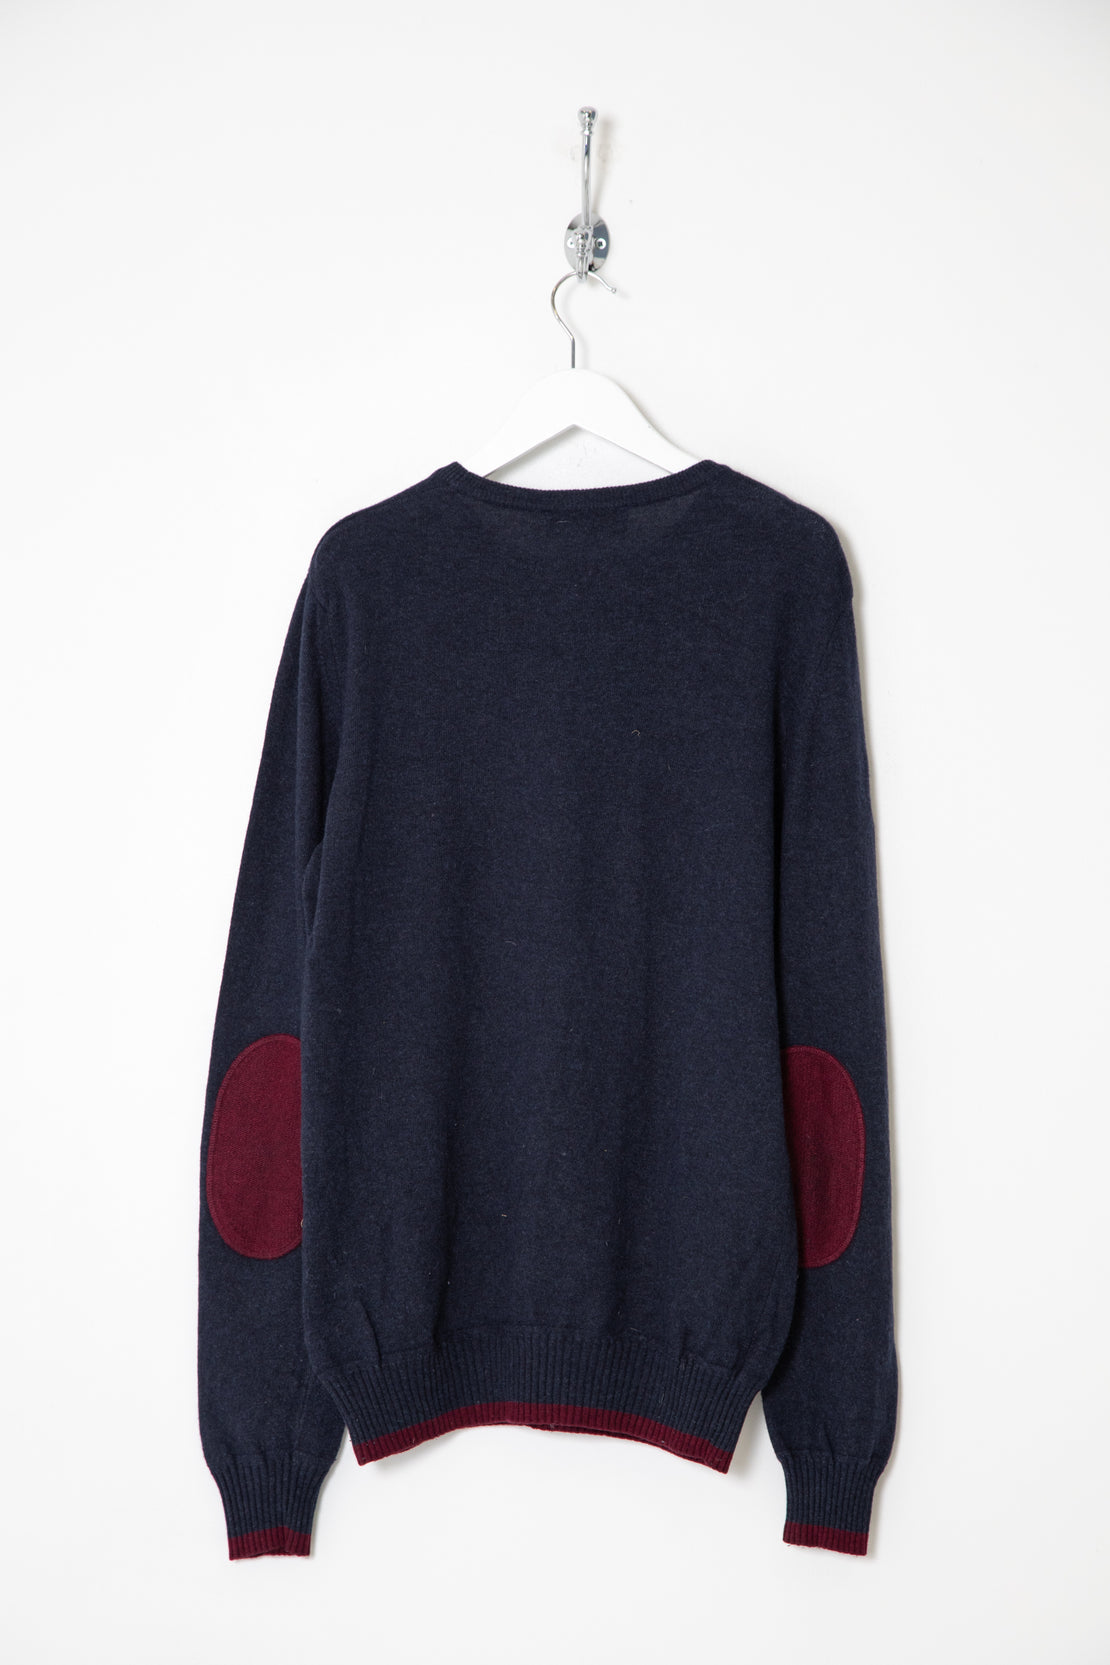 Fred Perry Sweatshirt (L)